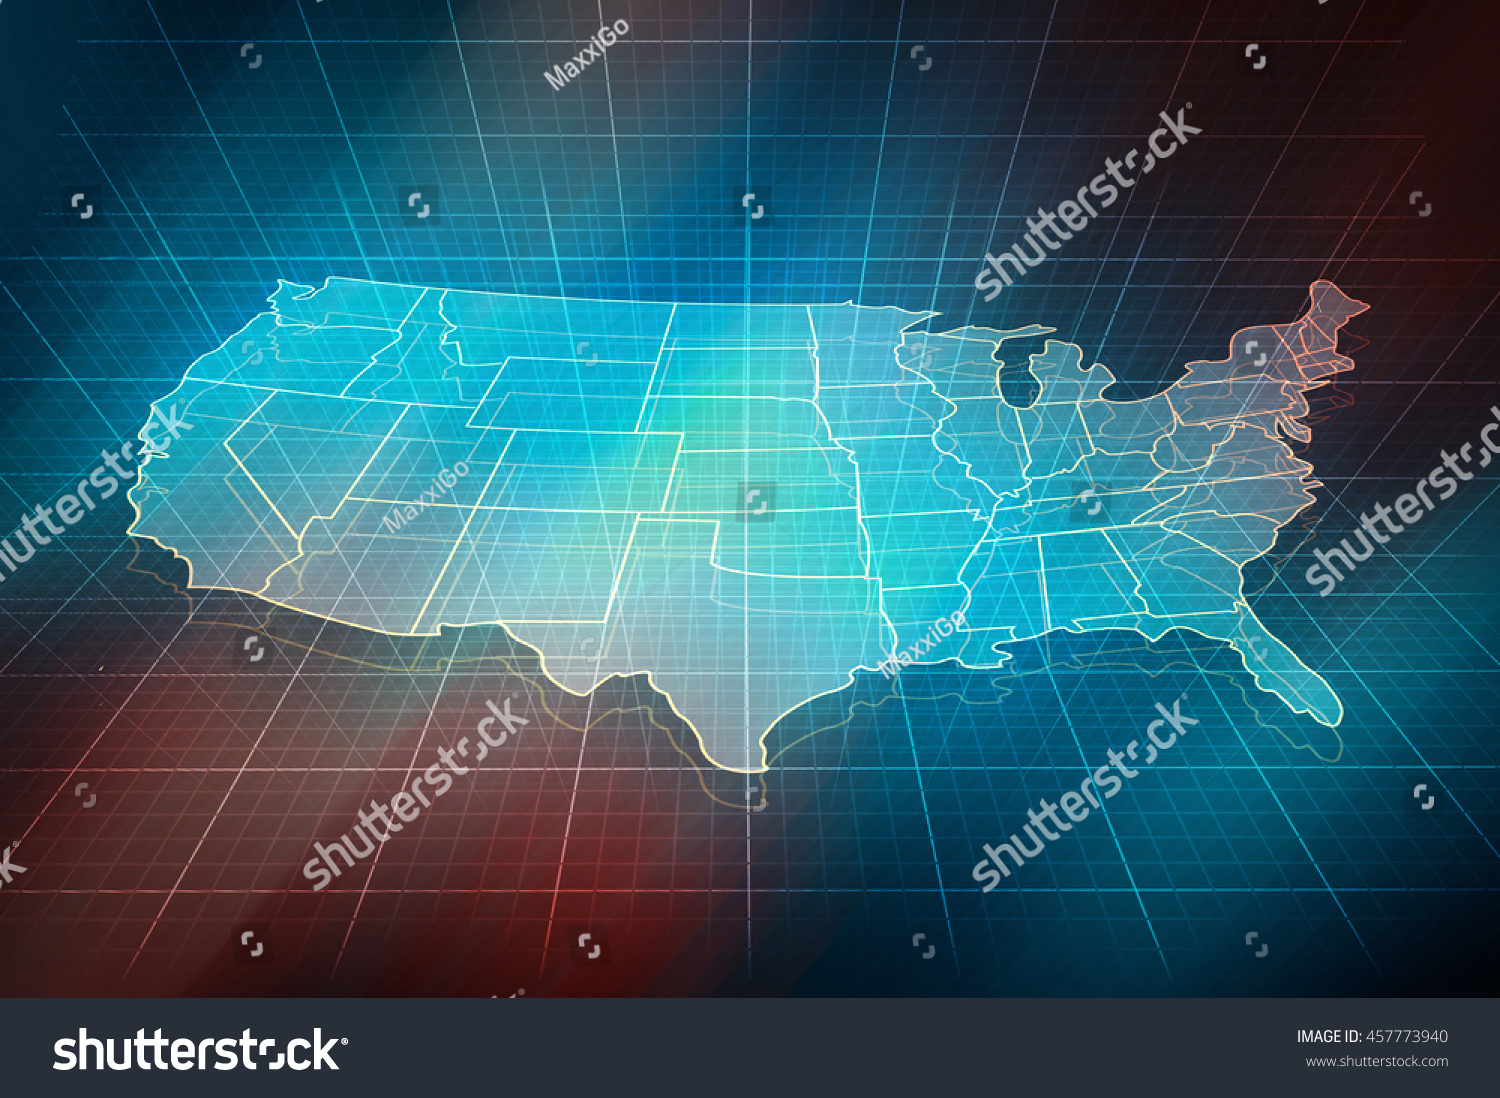 Us map outline map border states stock illustration 457773940 us map outline map with border of states digital design 3d map of gumiabroncs Gallery